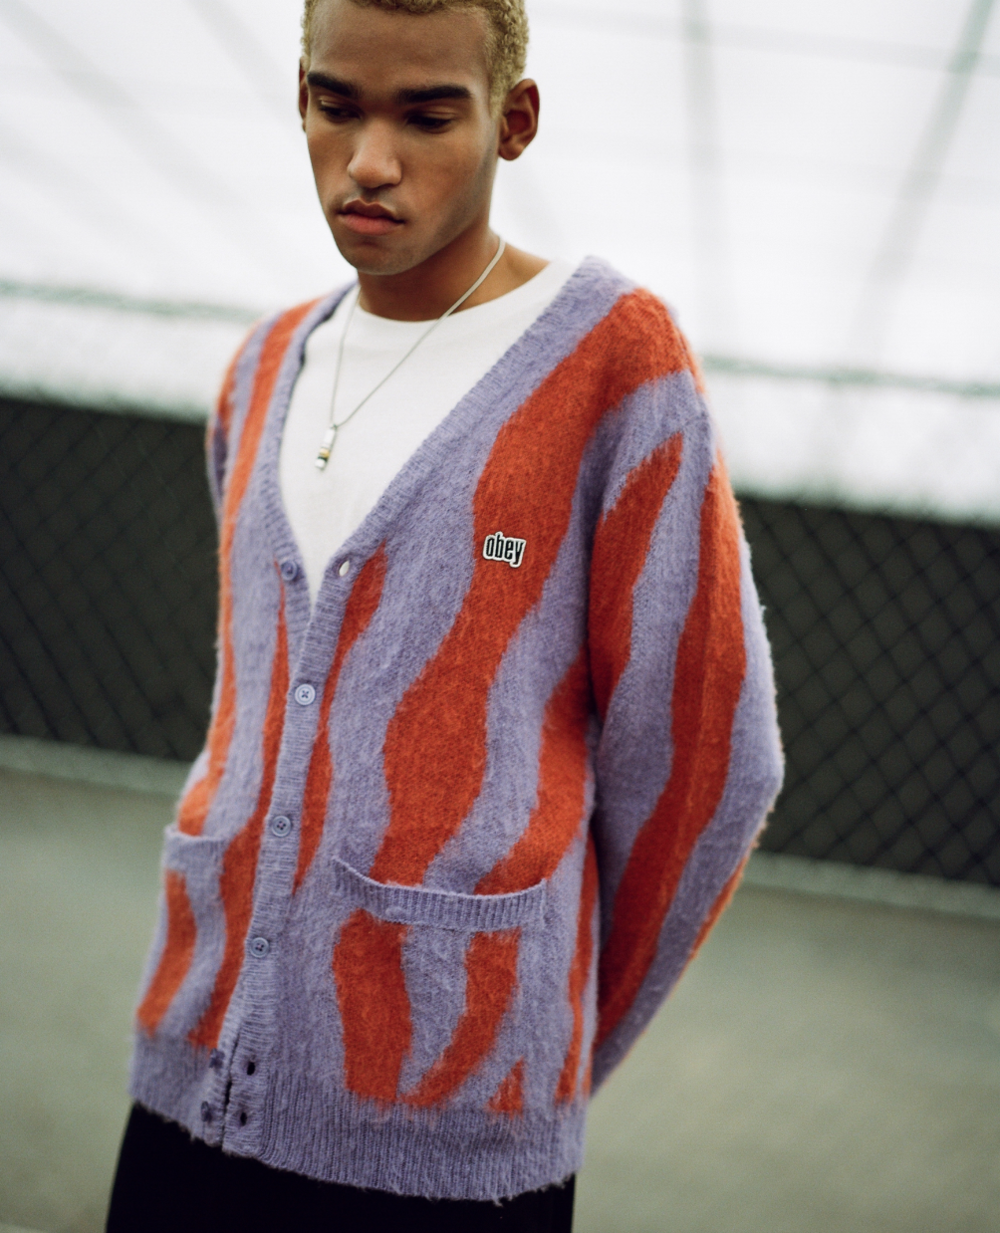 Styled OBEY Clothing Men's Fall Campaign, 2019